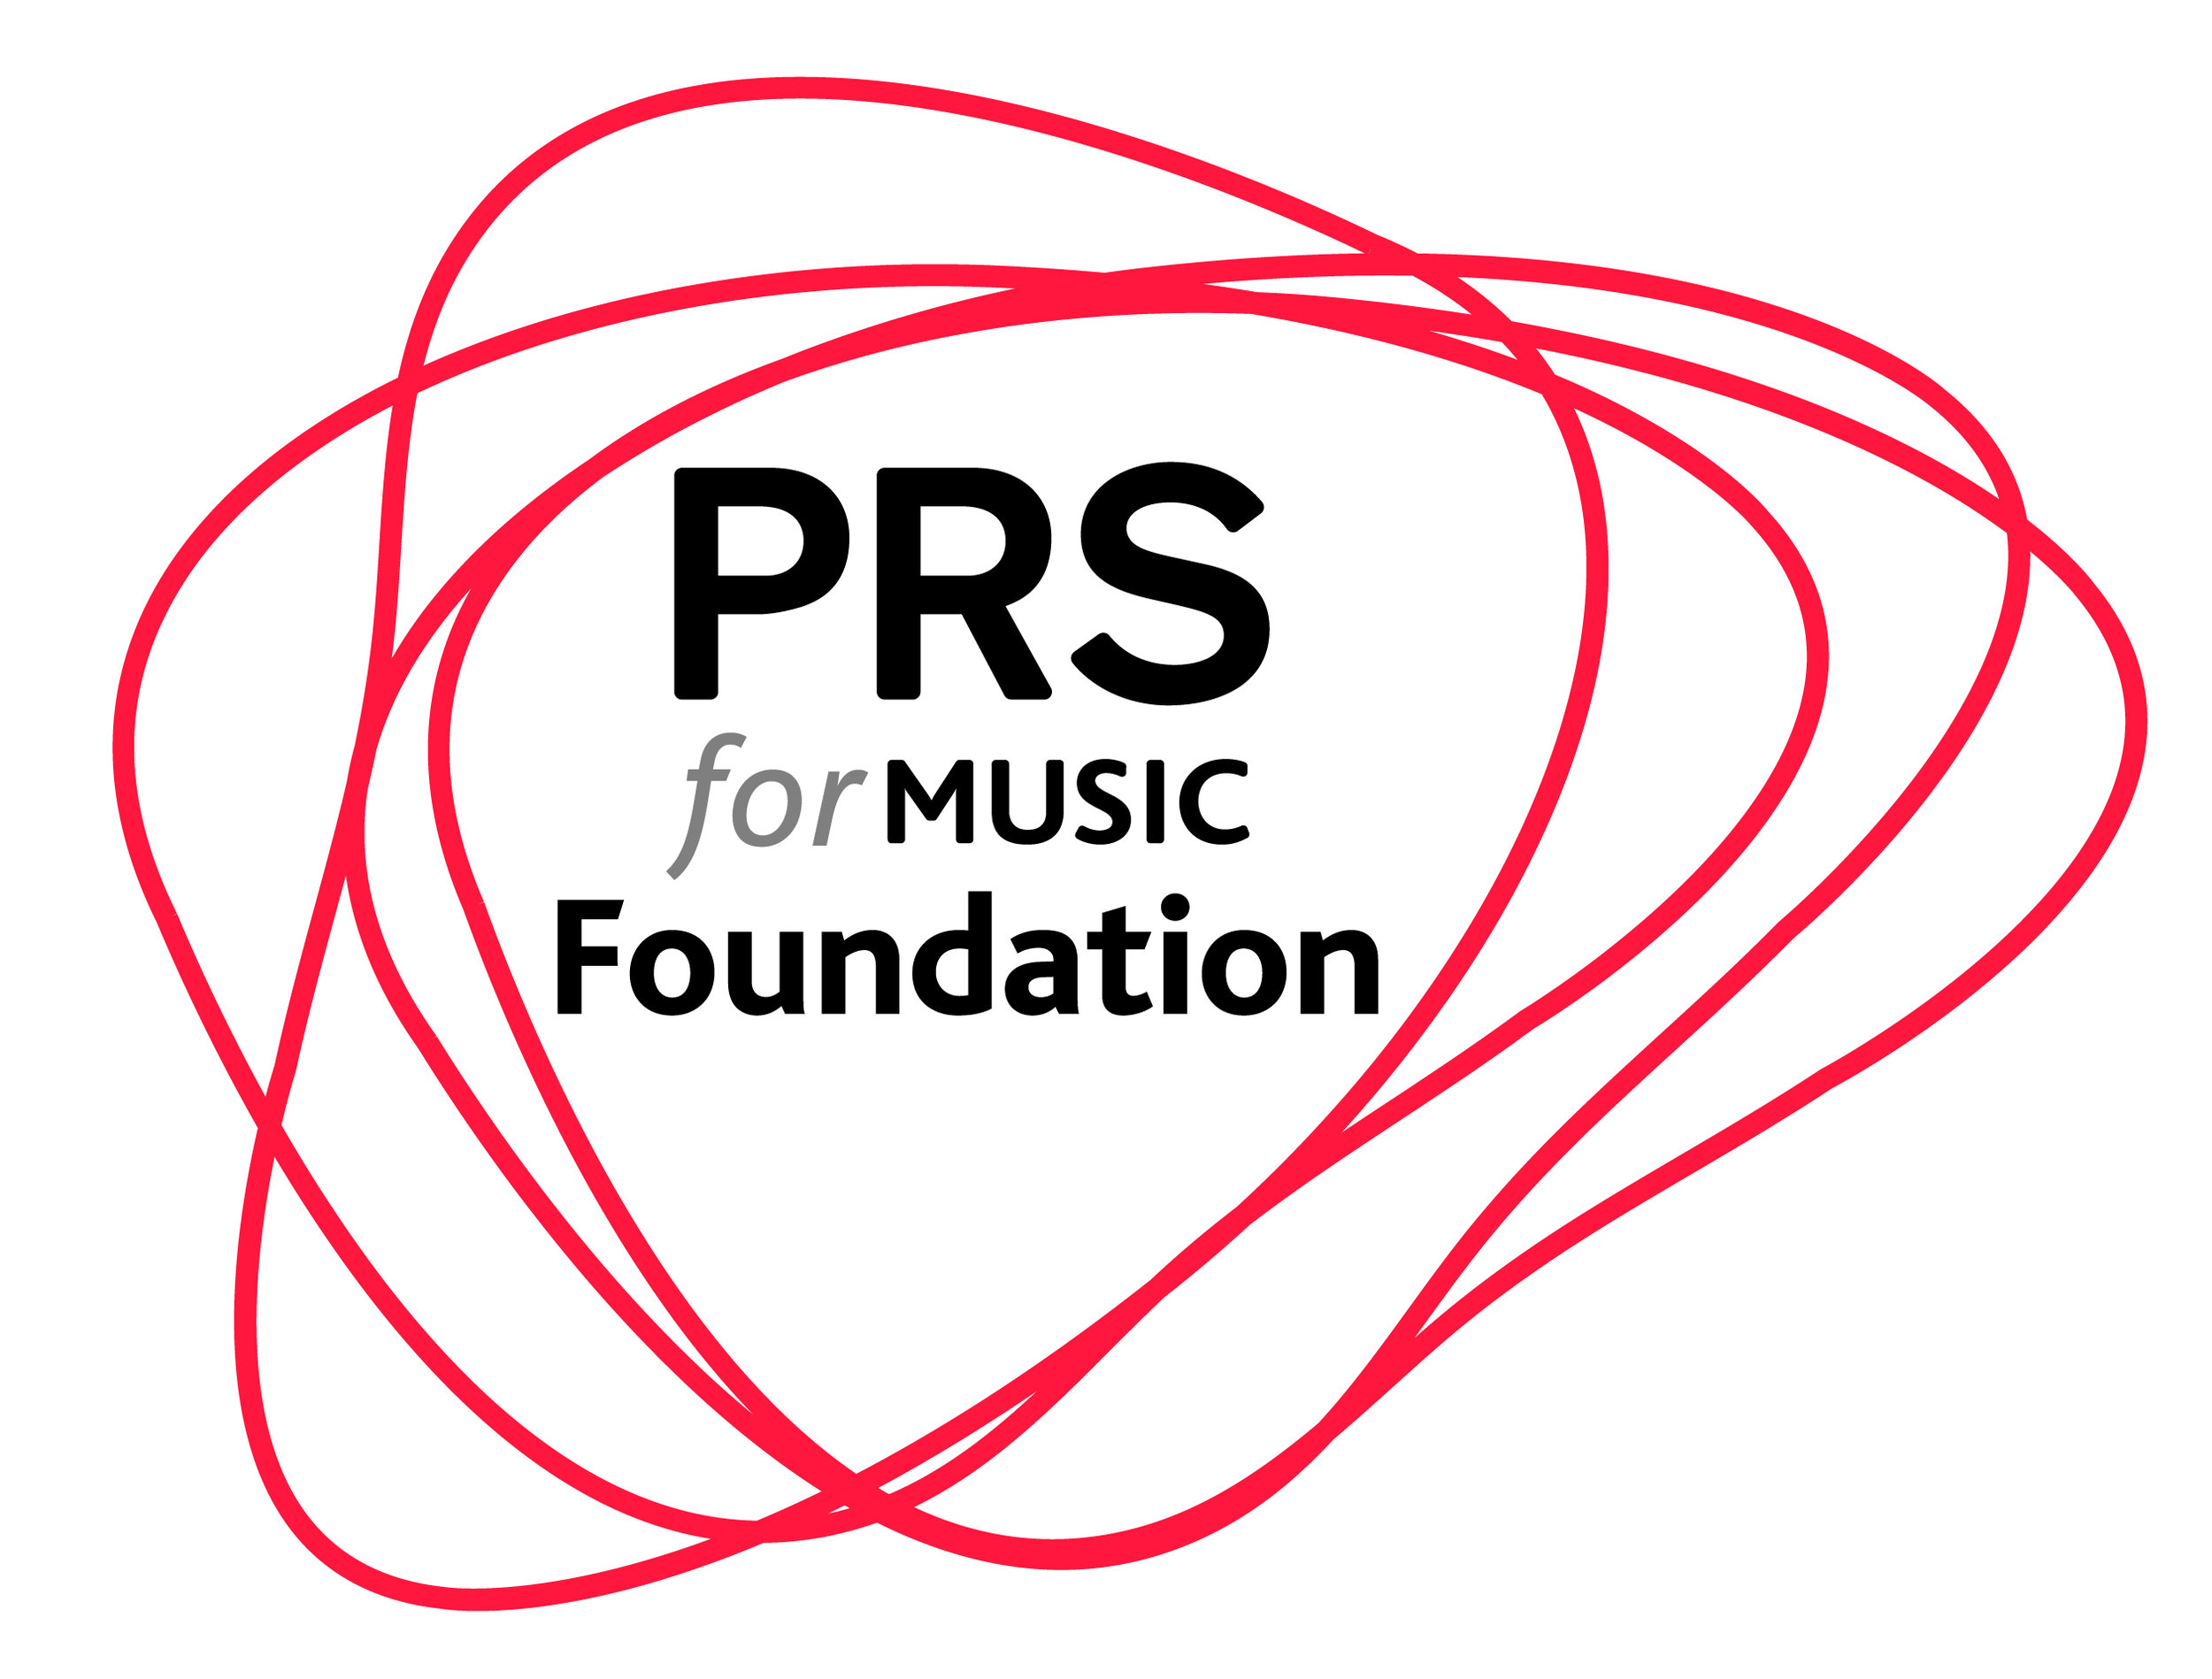 Supported by prs for music foundation